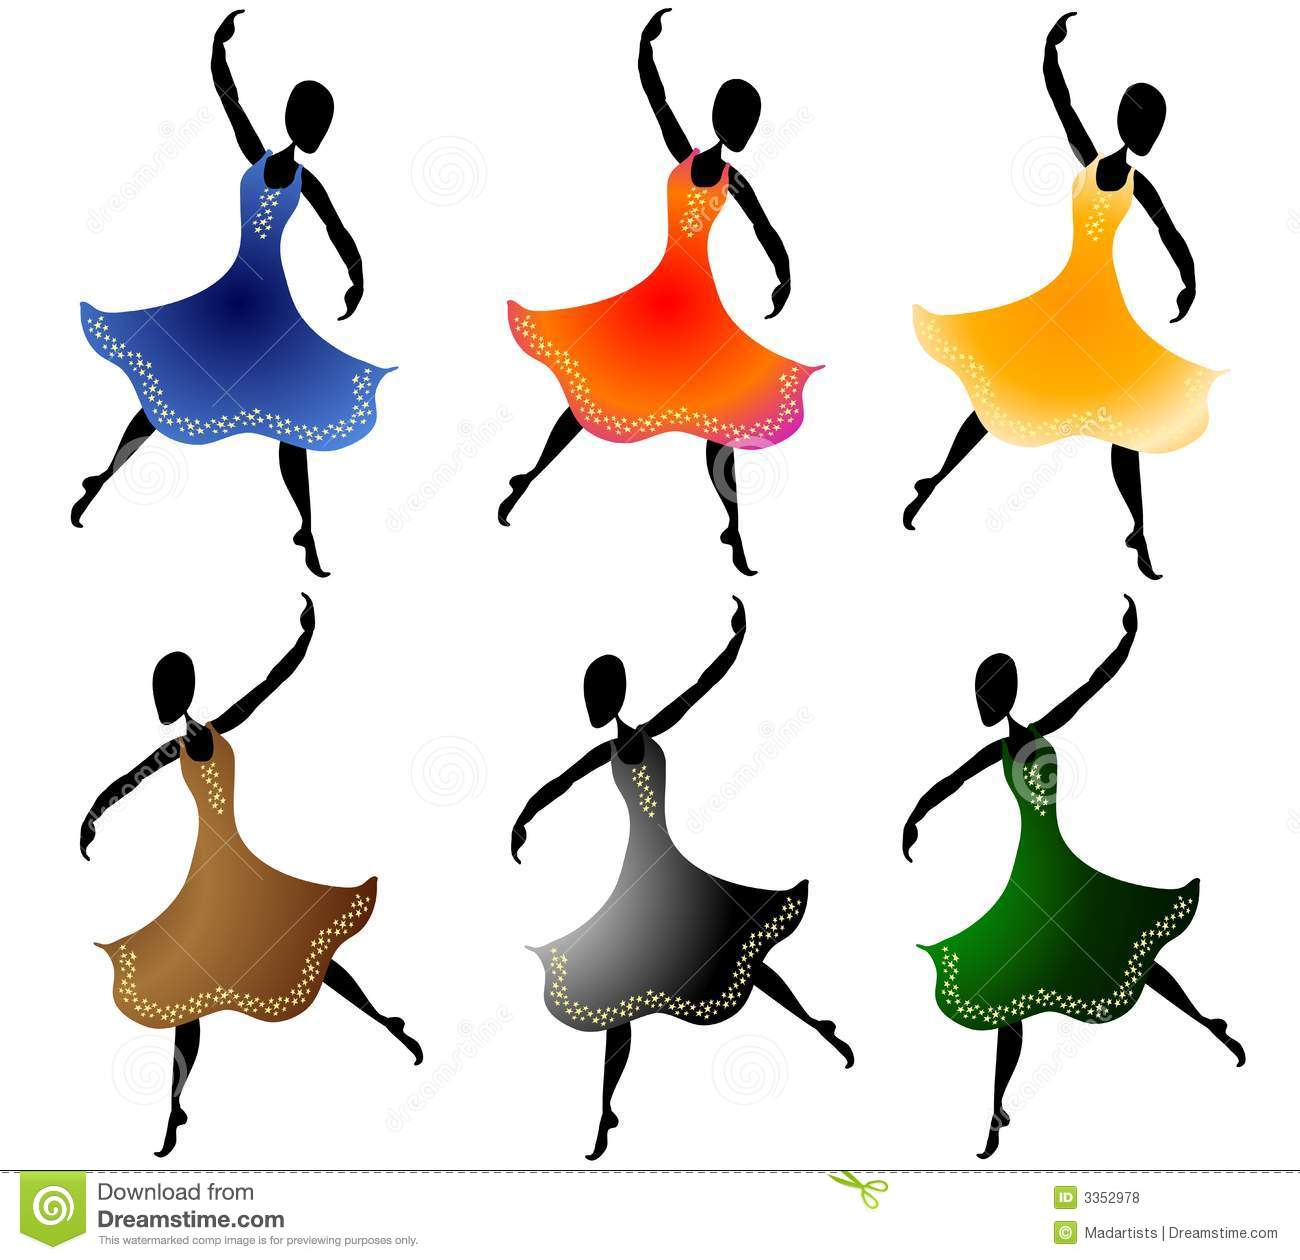 clip art dancer silhouette at getdrawings com free for personal rh getdrawings com line dancing clipart free dancing clip art free